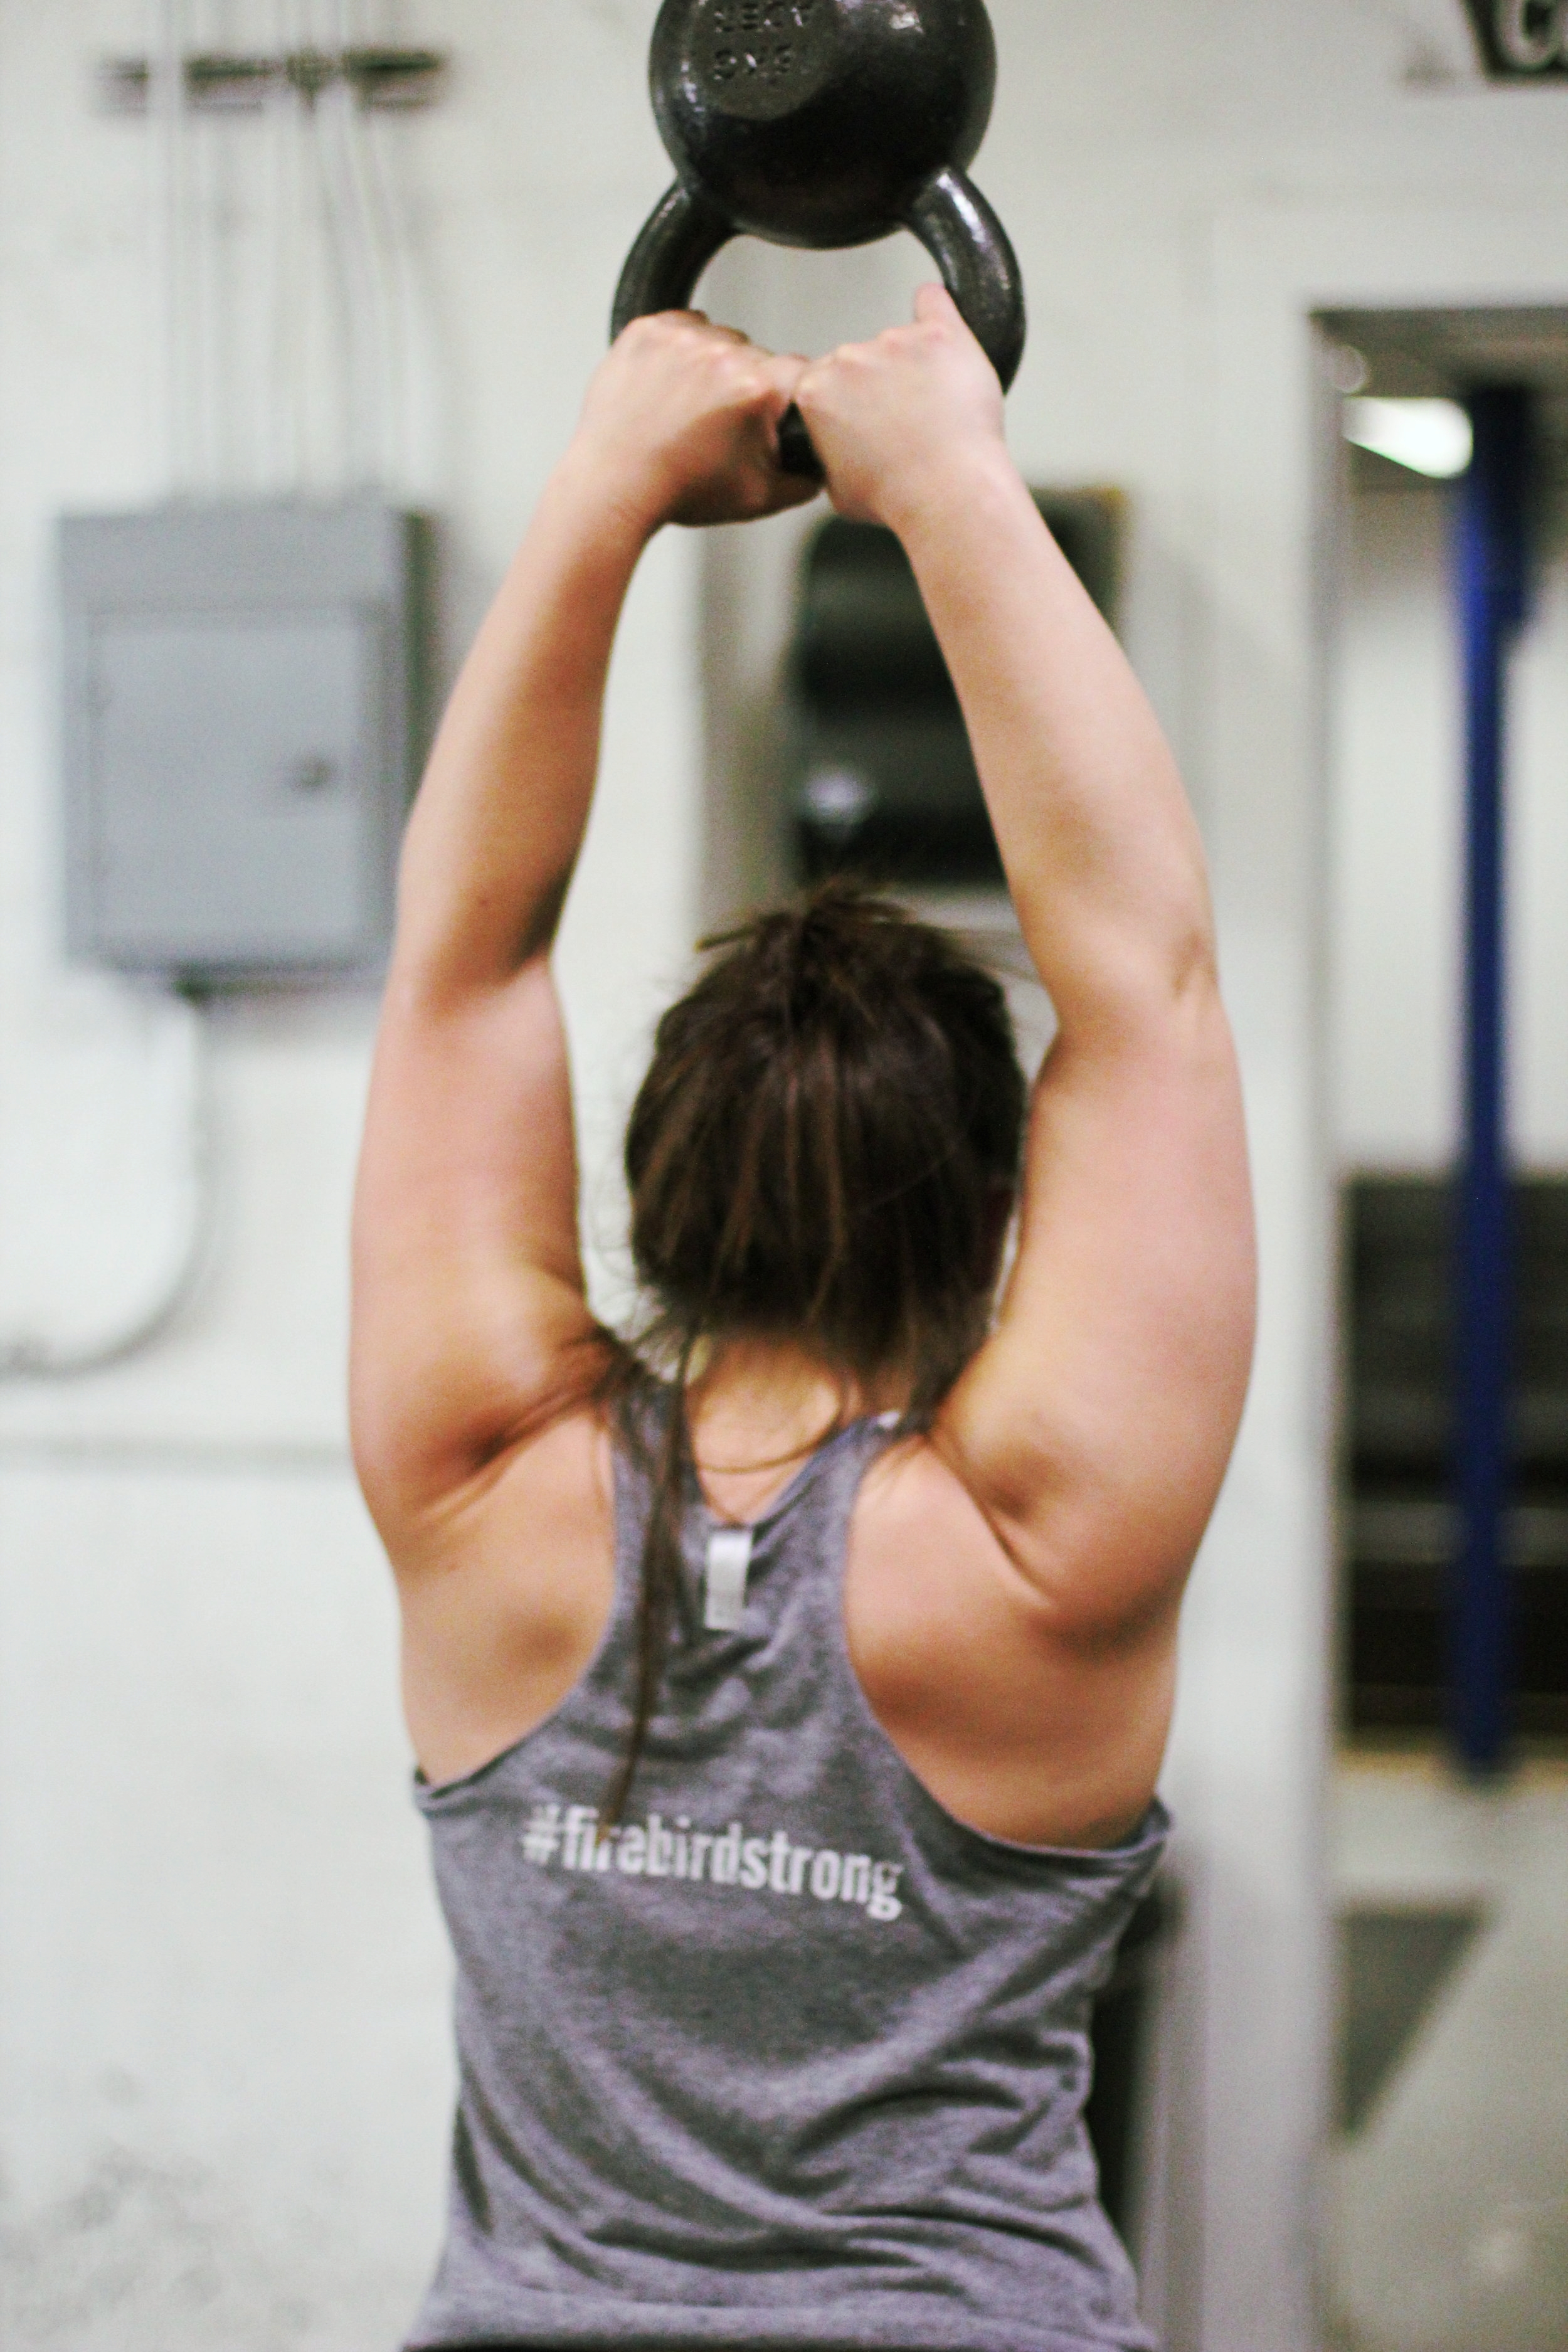 Kettlebell swings give you wings! Here's PVCF athlete, Julia Boyle showing us how it's done!